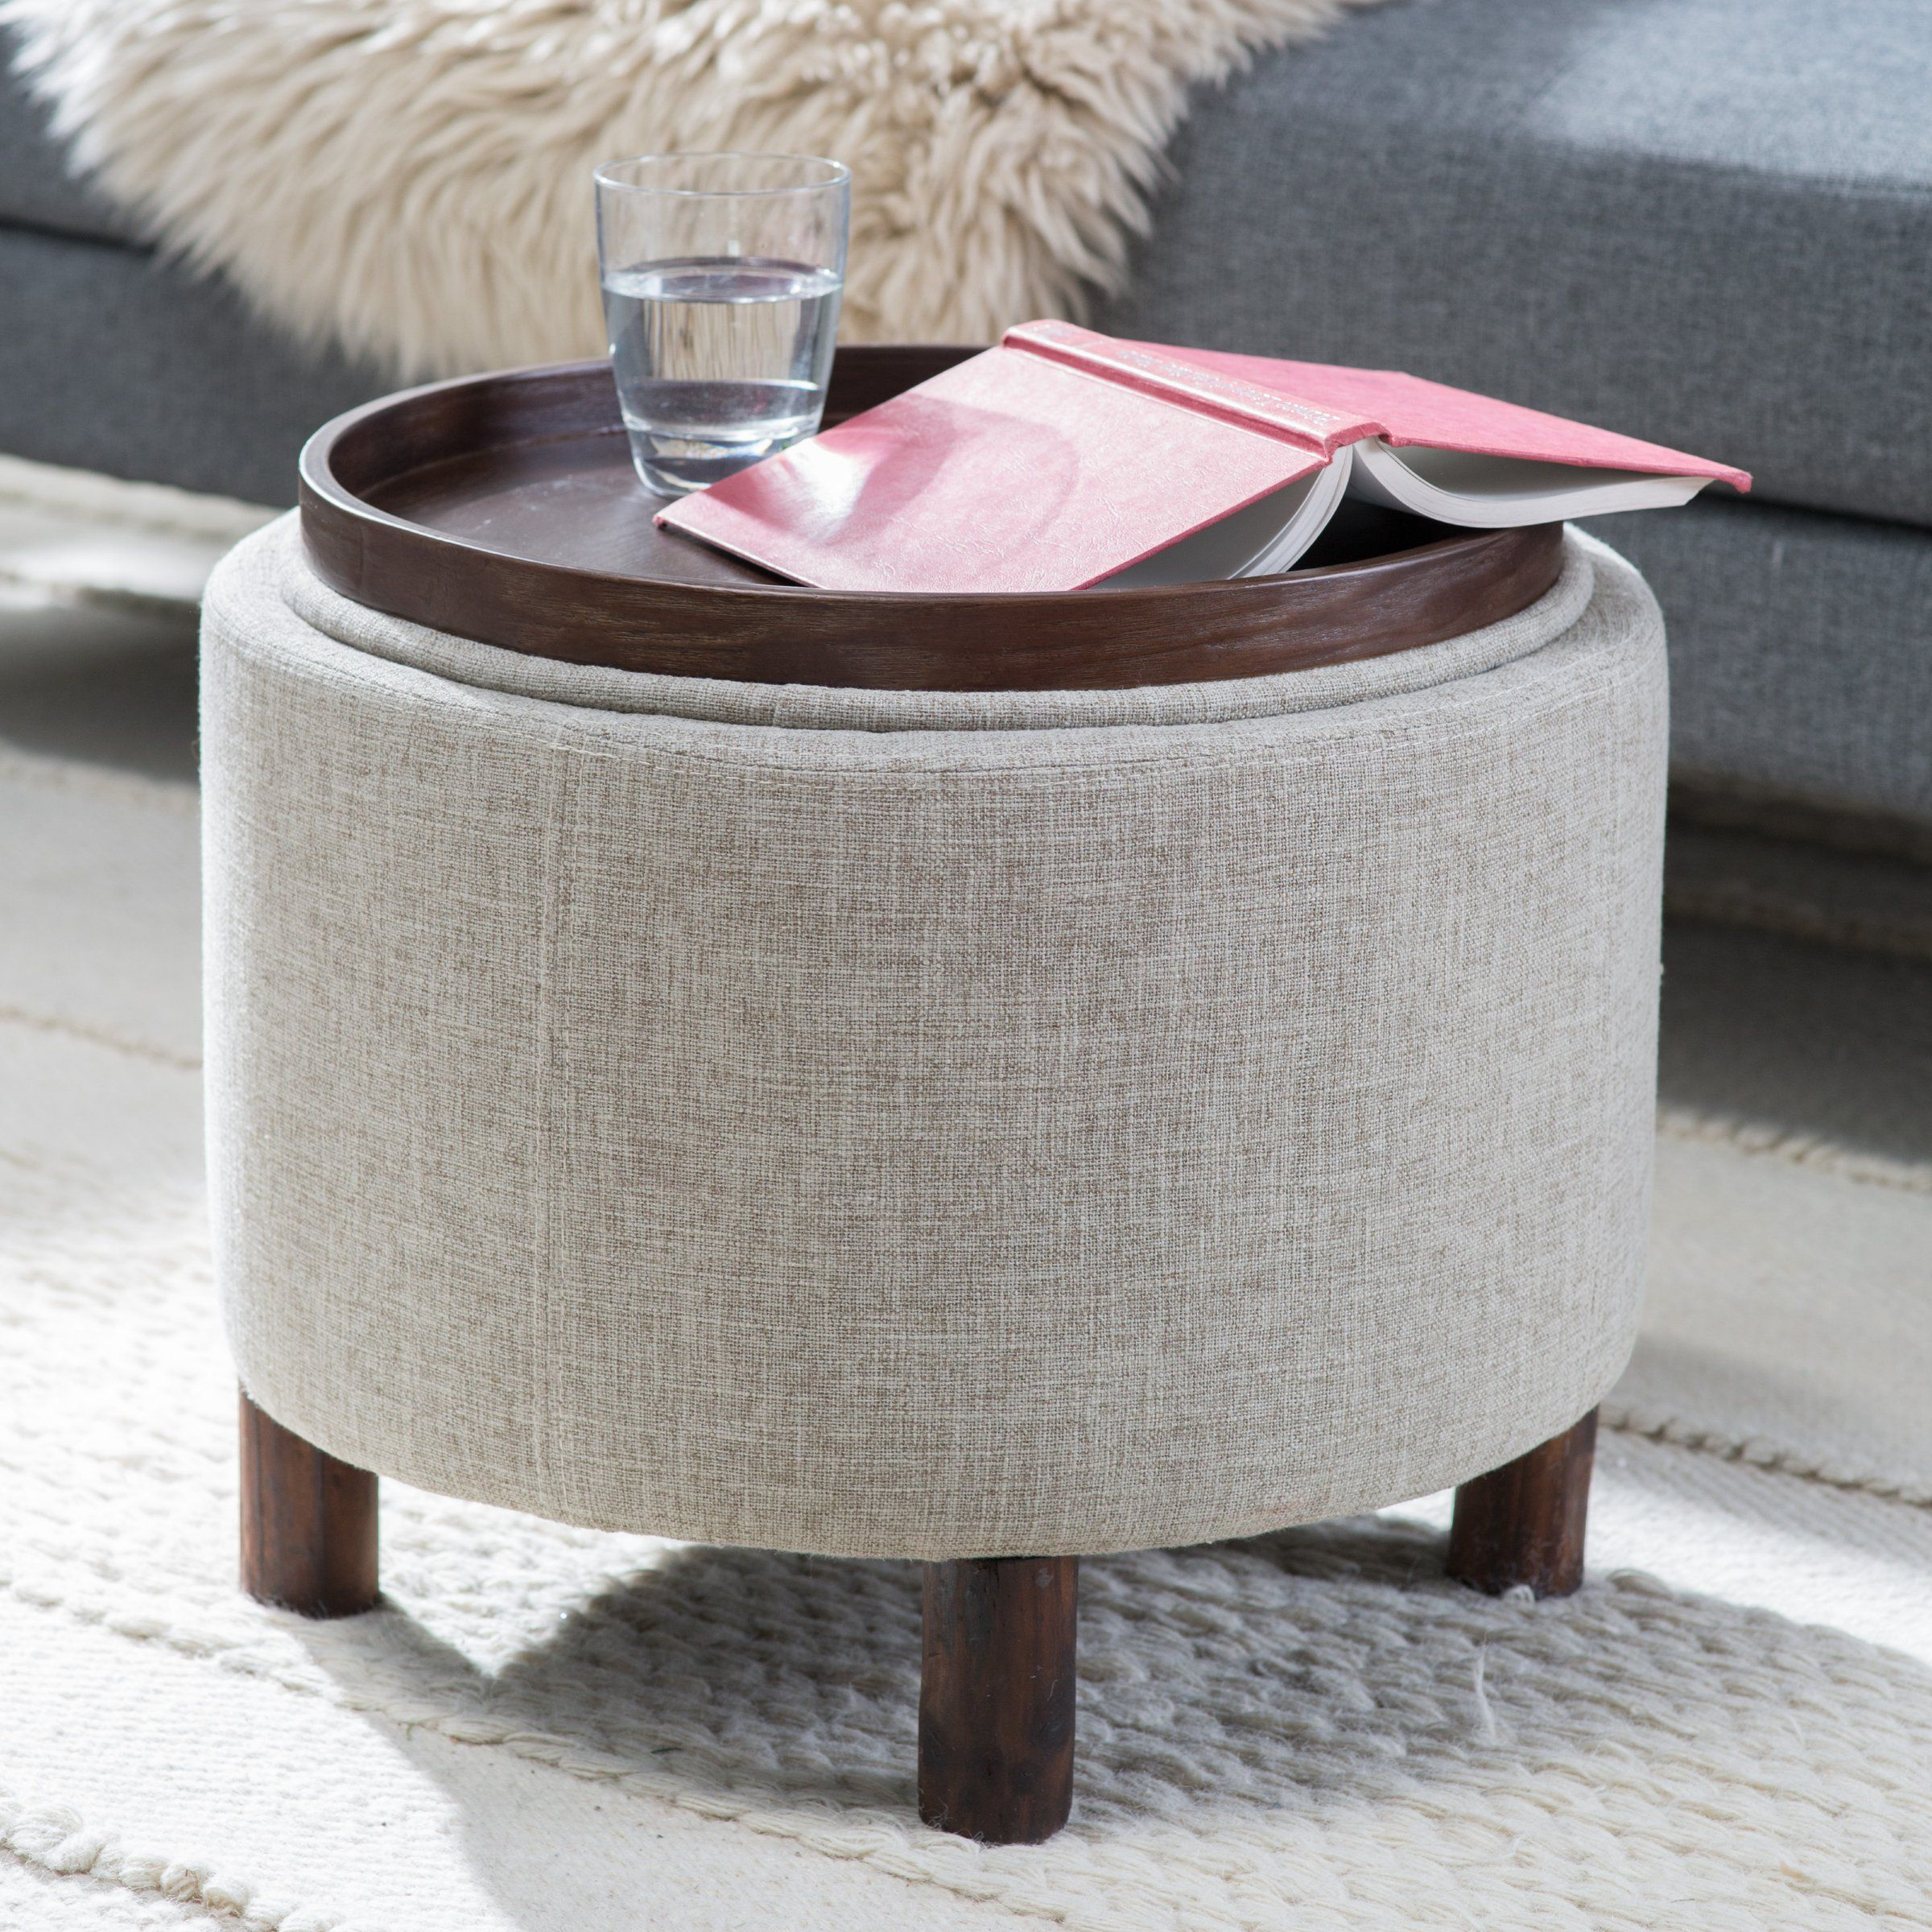 Awe Inspiring Belham Living Ingram Round Storage Ottoman With Cocktail Alphanode Cool Chair Designs And Ideas Alphanodeonline